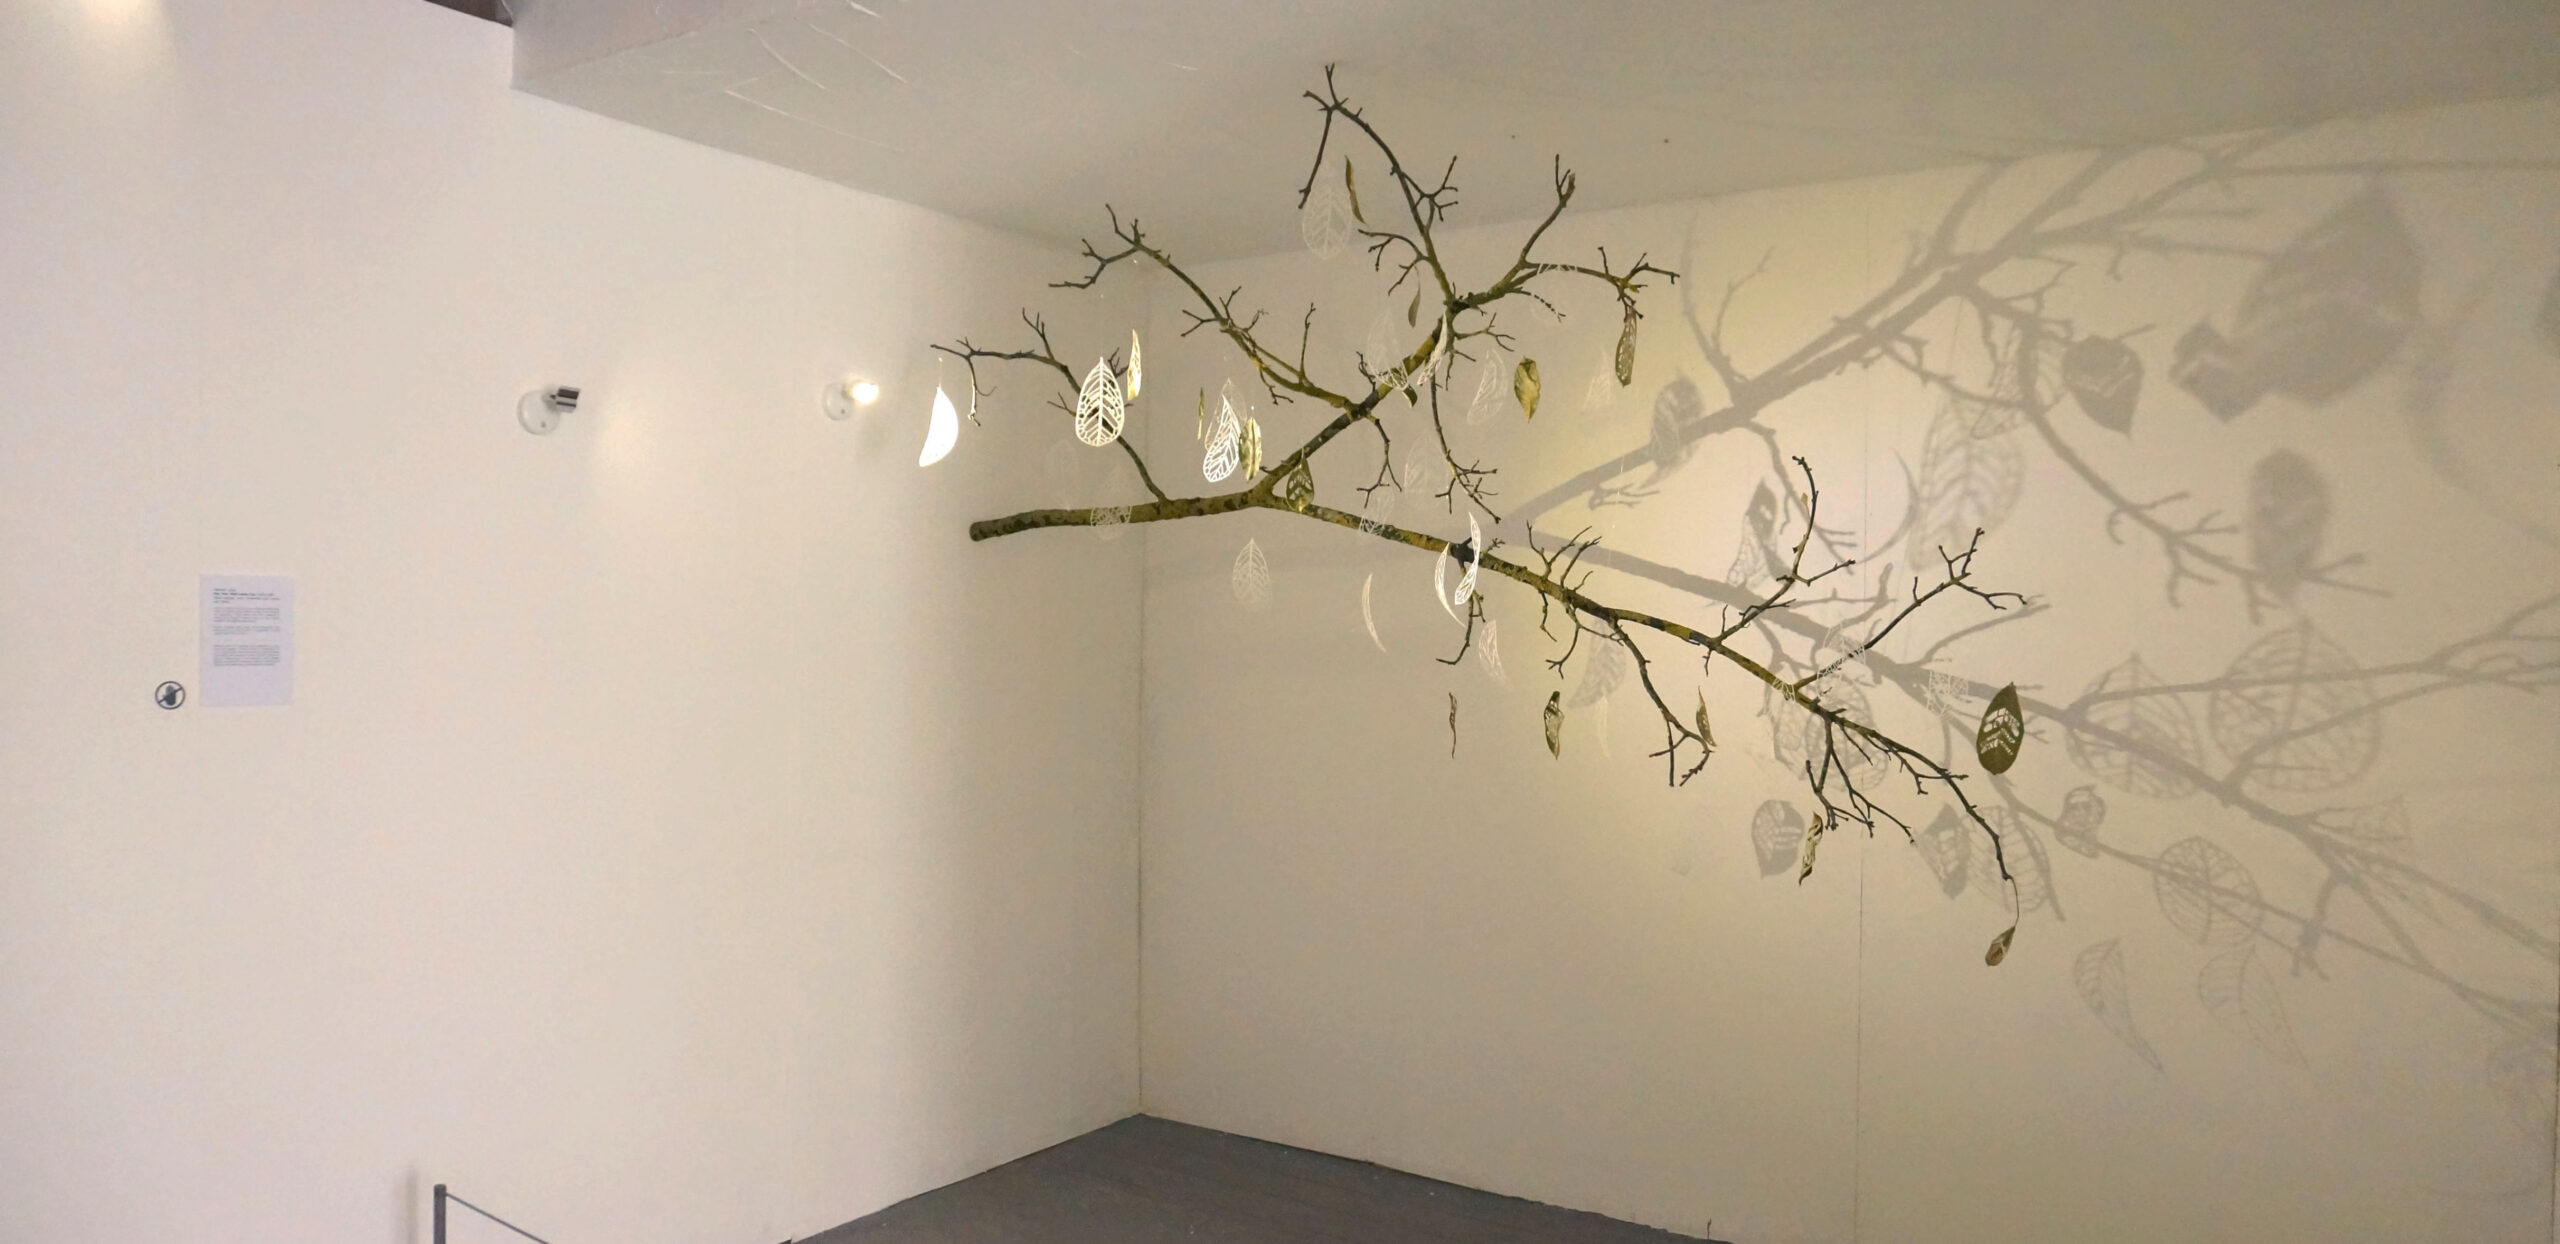 A mixed-media art installation made of carved leaves, glass leaves and a tree branch